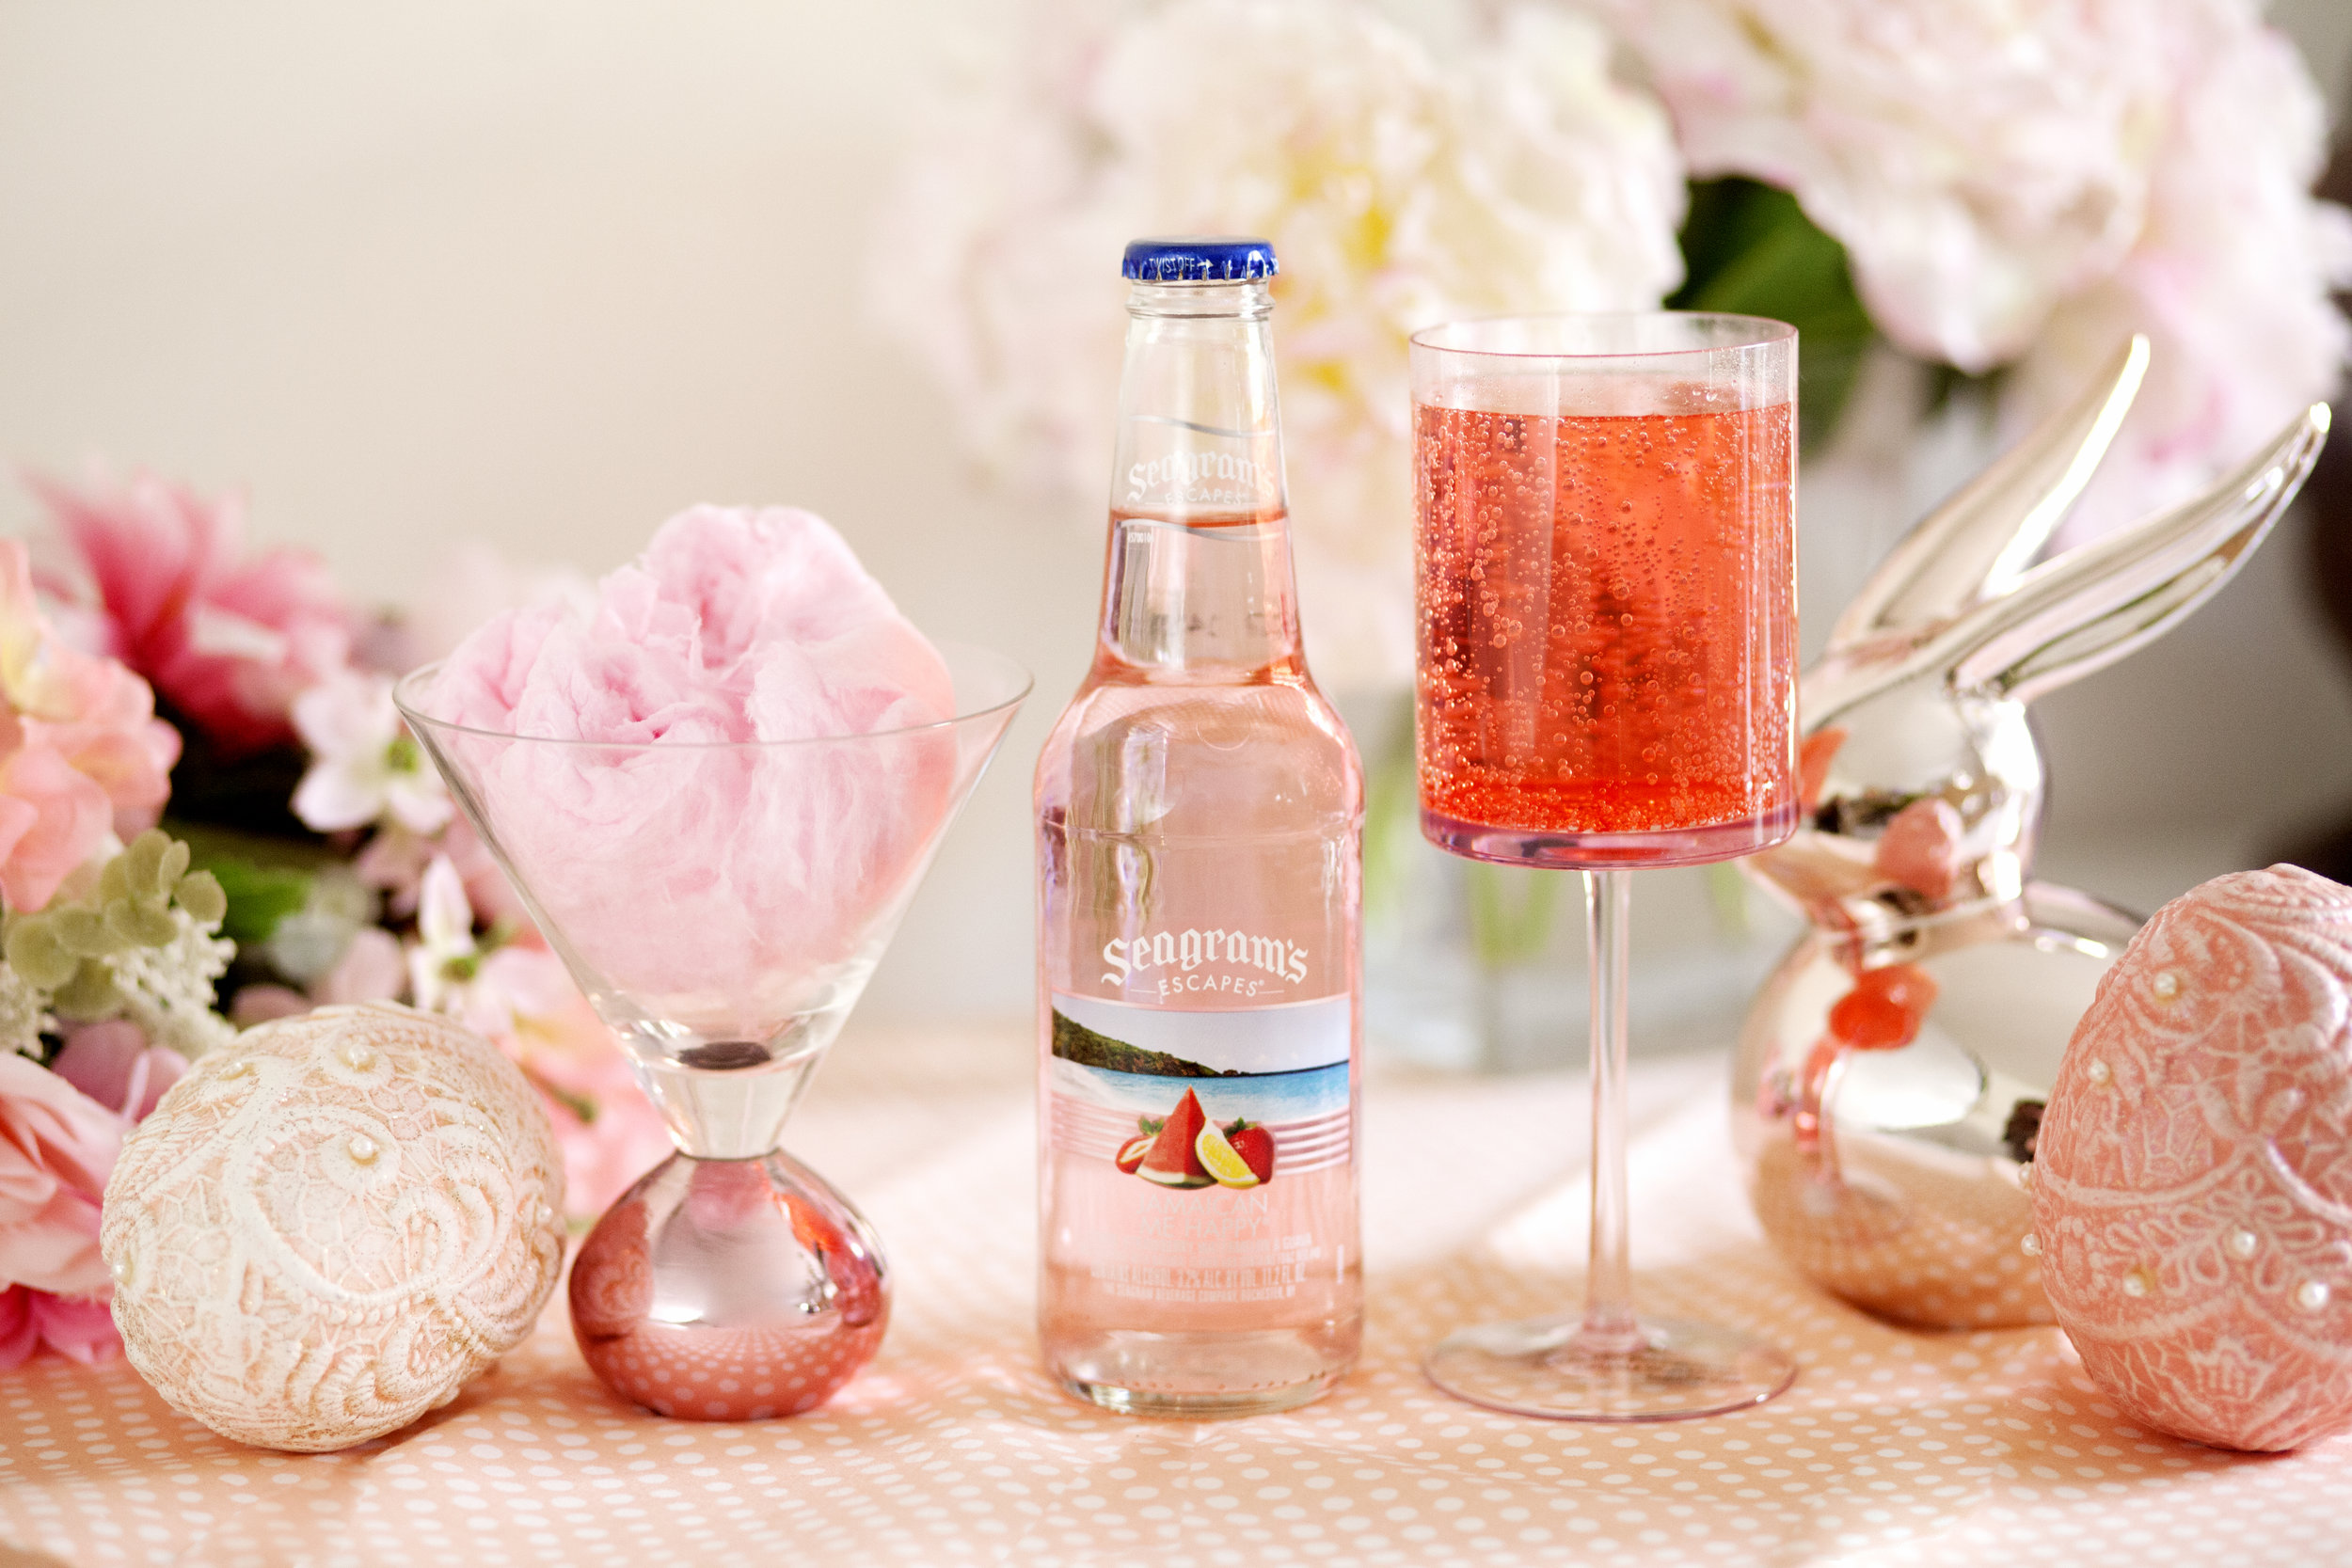 Jamaican Me Happy Seagram's Escapes Easter Cocktail - The Gilded Bellini